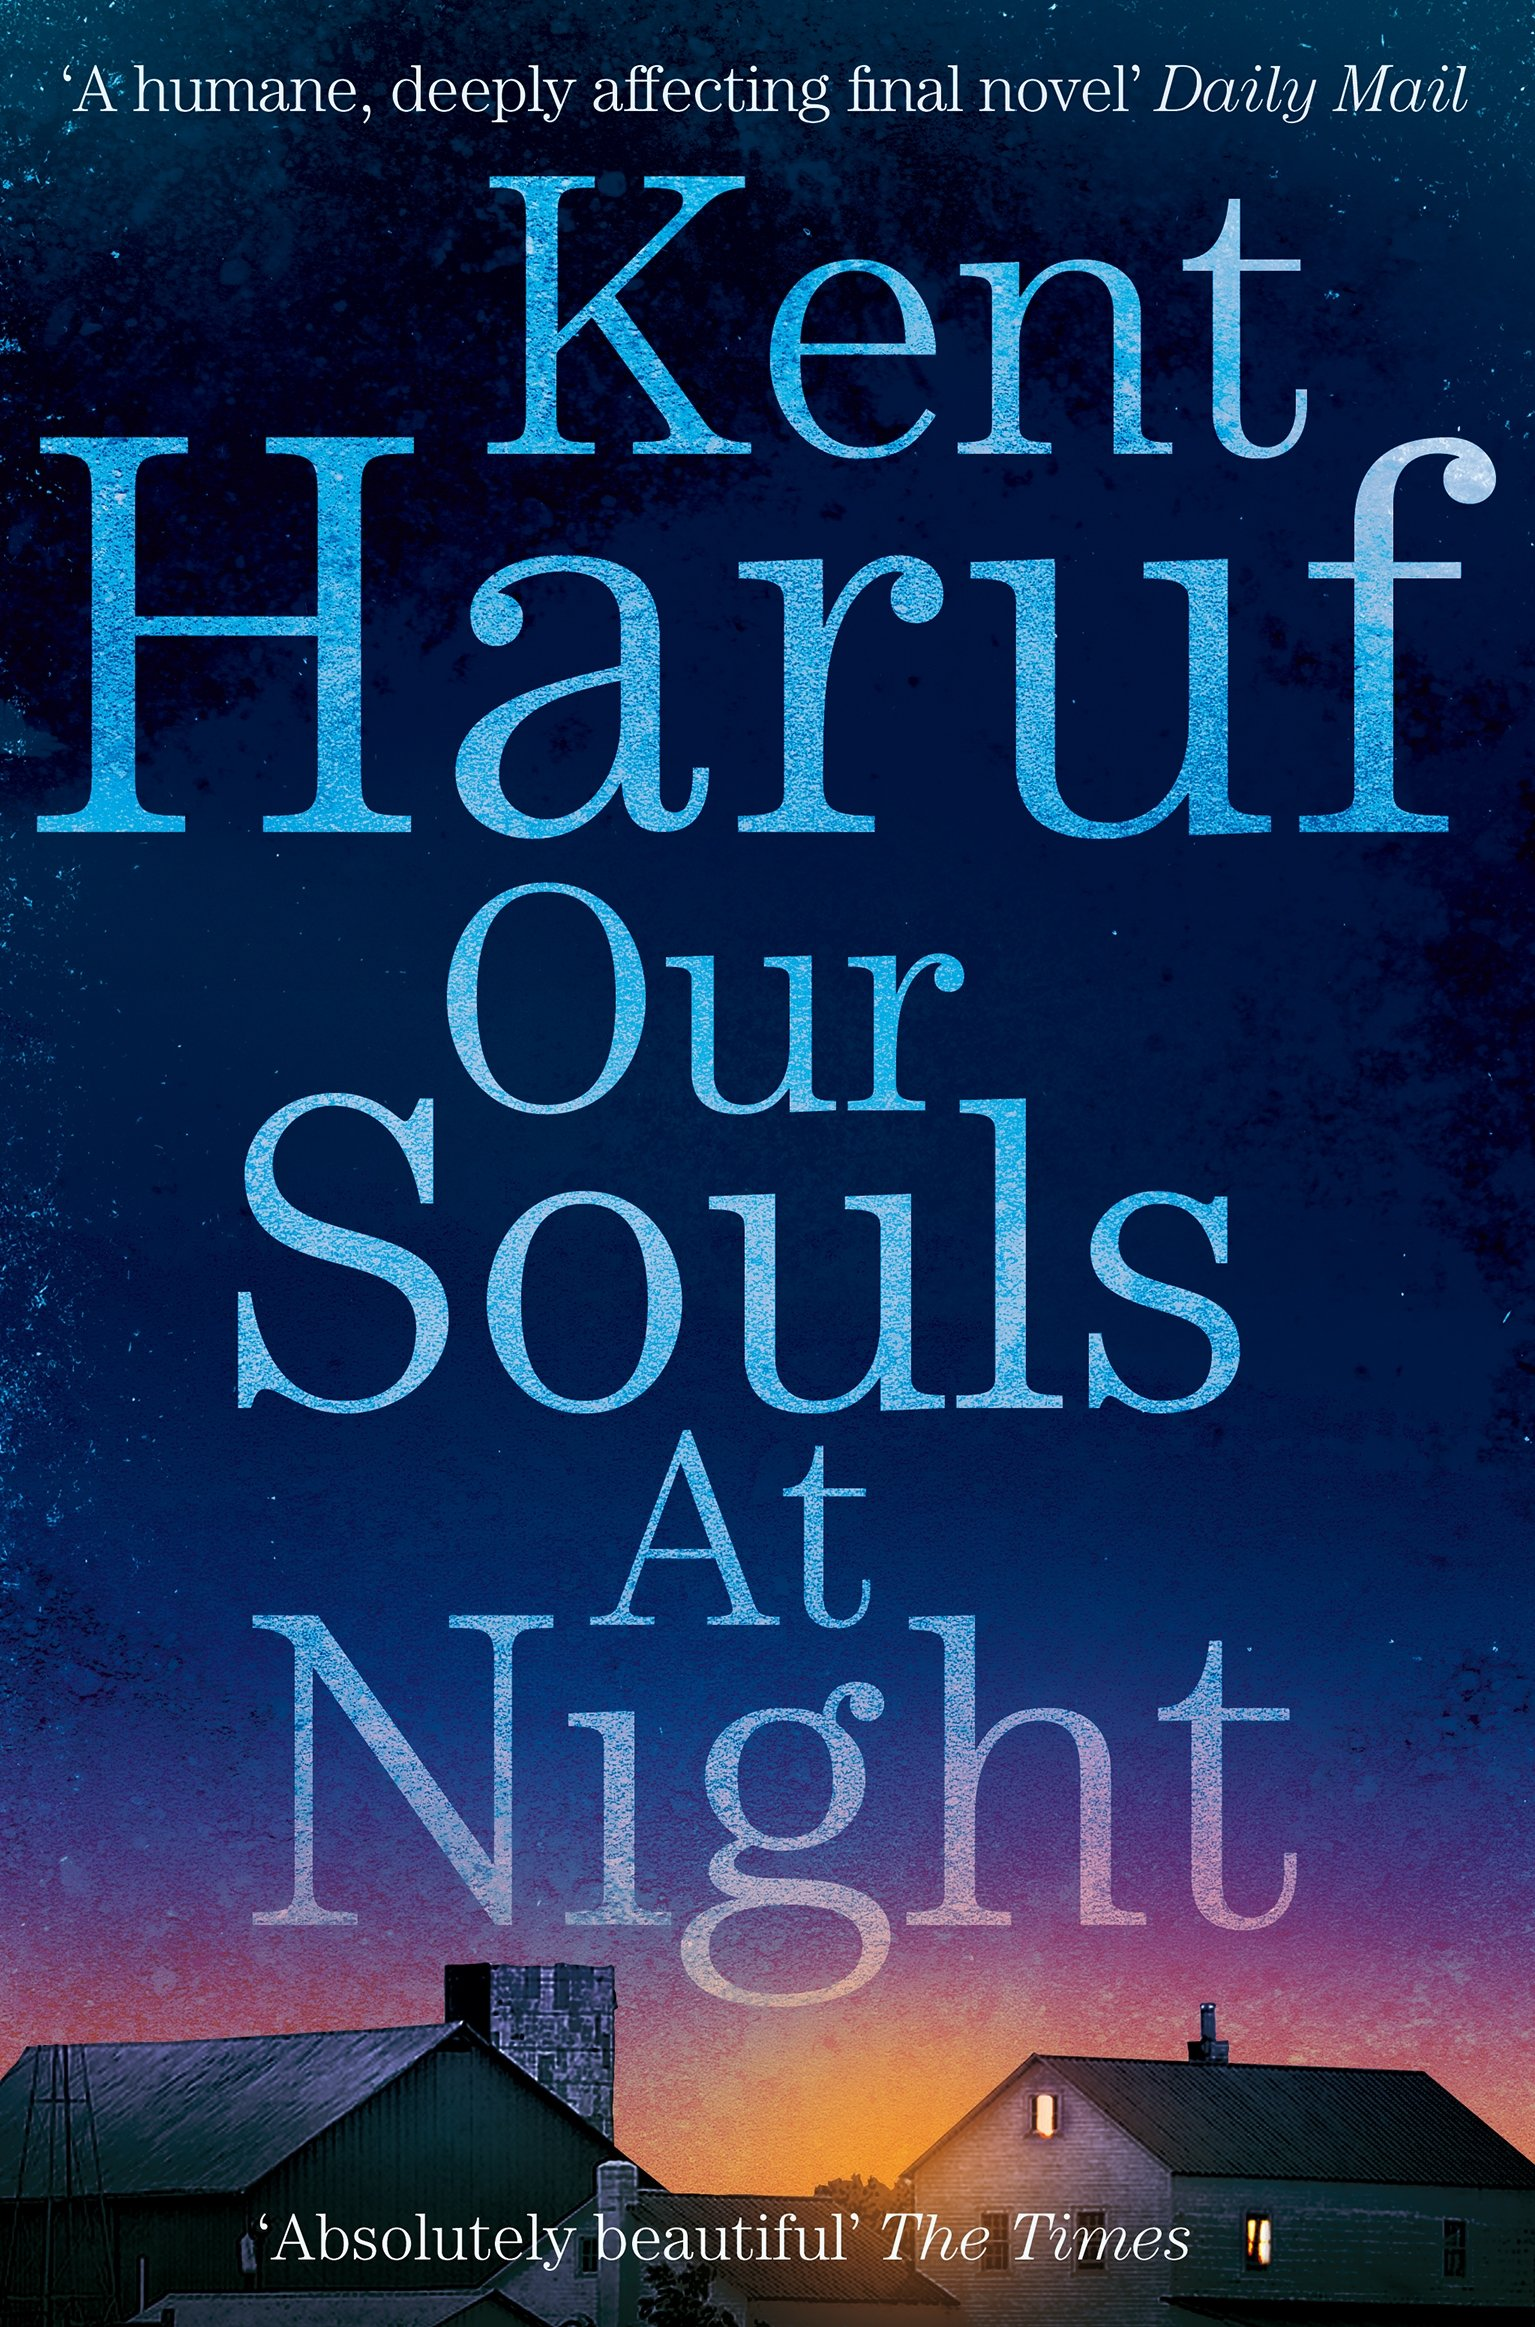 HarusOurSoulsatNight